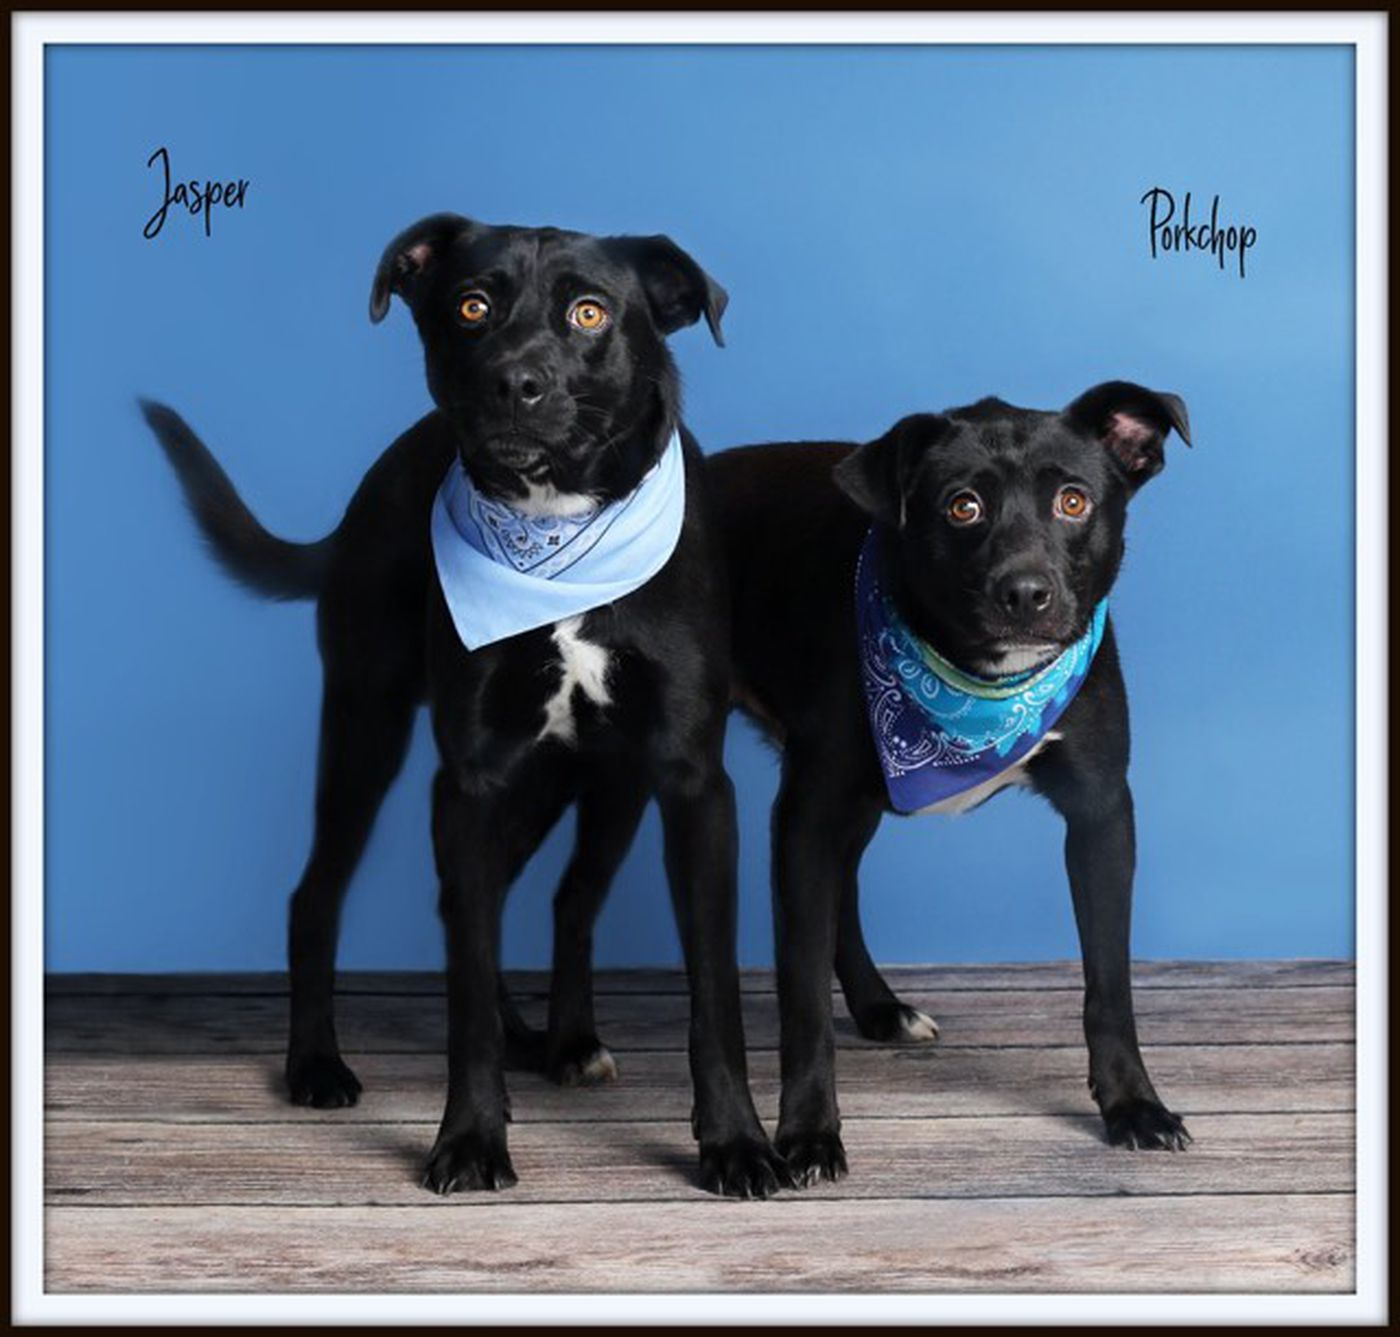 KCBD's Pet(s) of the Day: Porkchop and Jasper